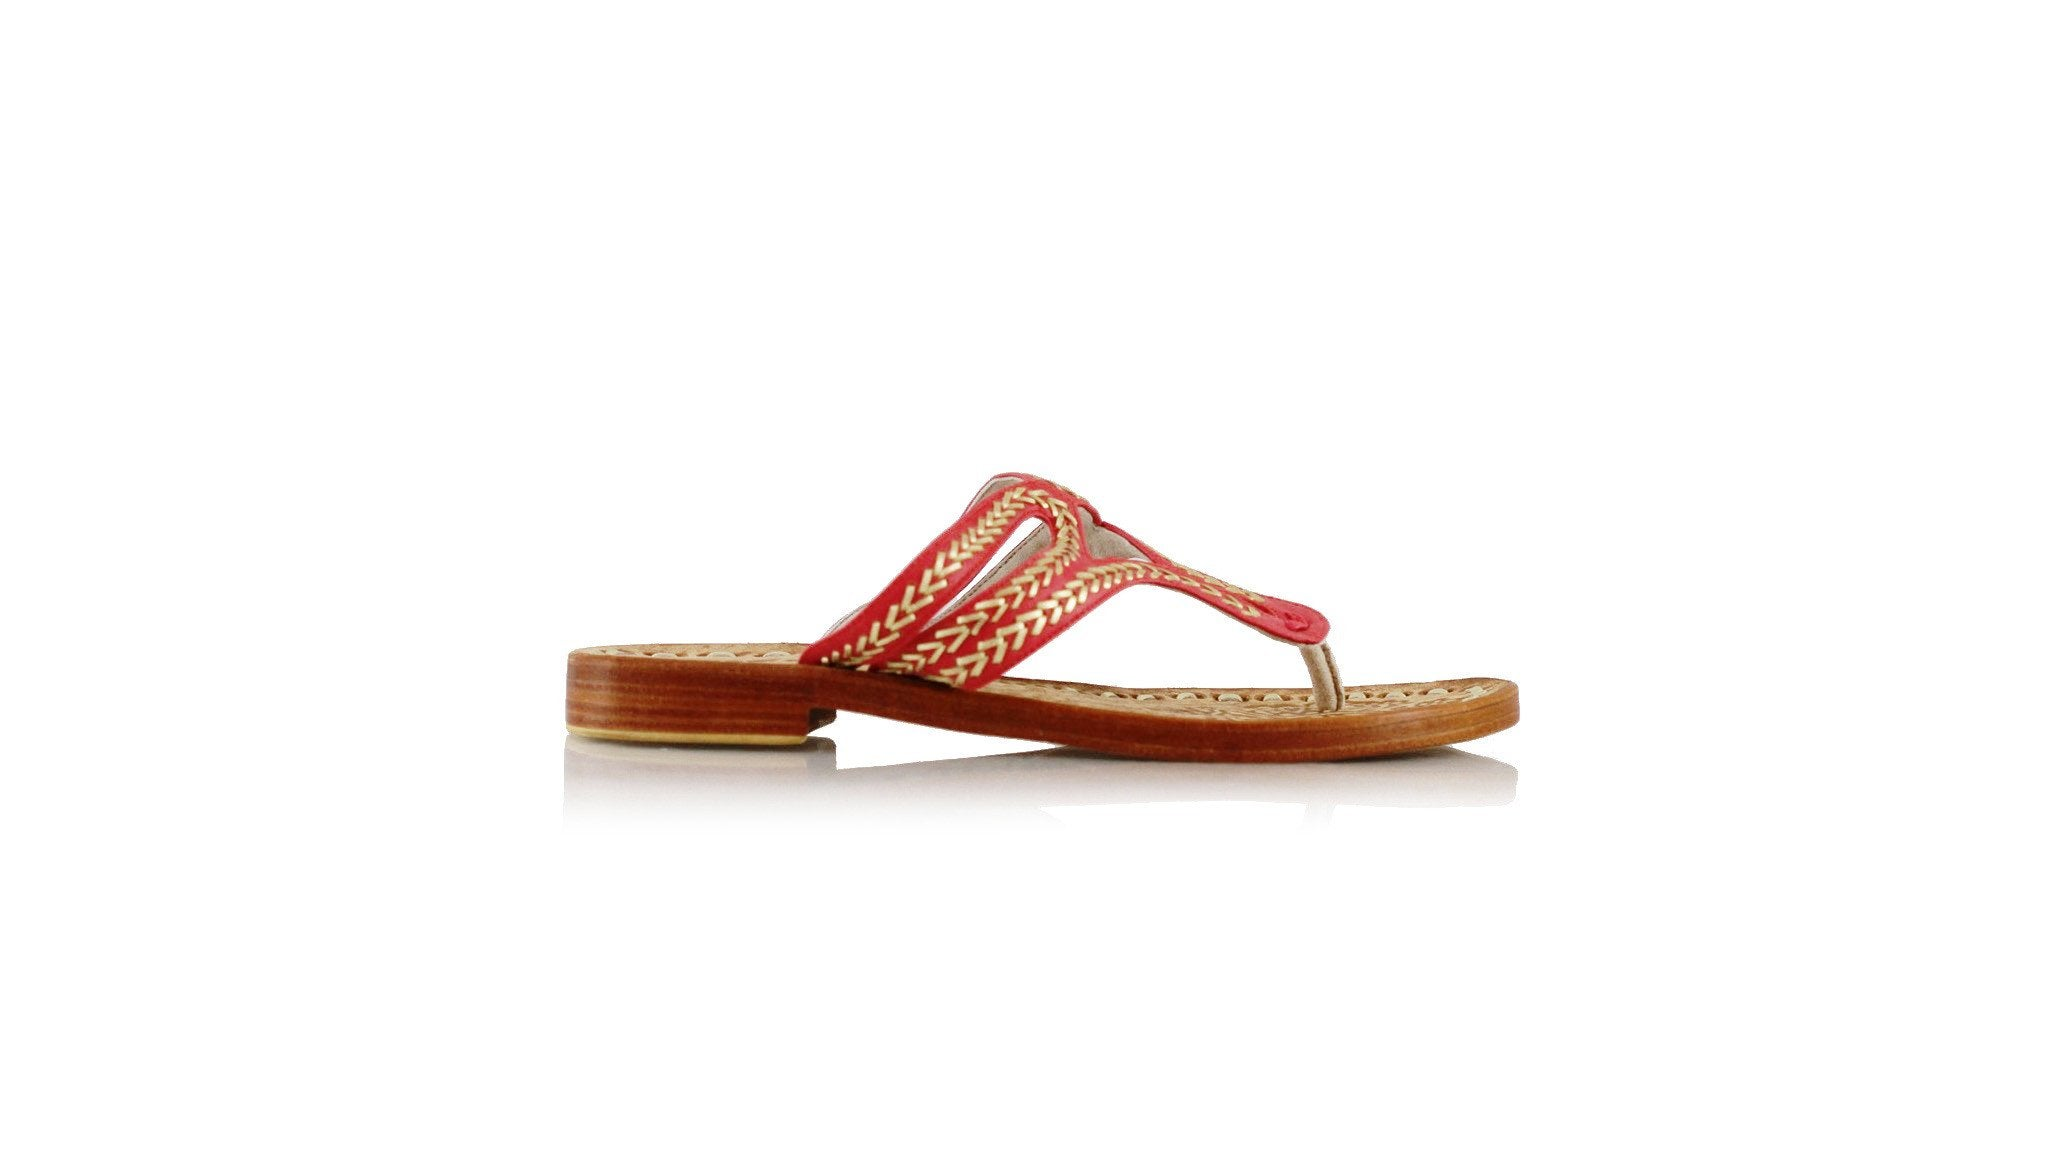 Leather-shoes-Arrah 20mm Flat - Red & Gold-sandals higheel-NILUH DJELANTIK-NILUH DJELANTIK